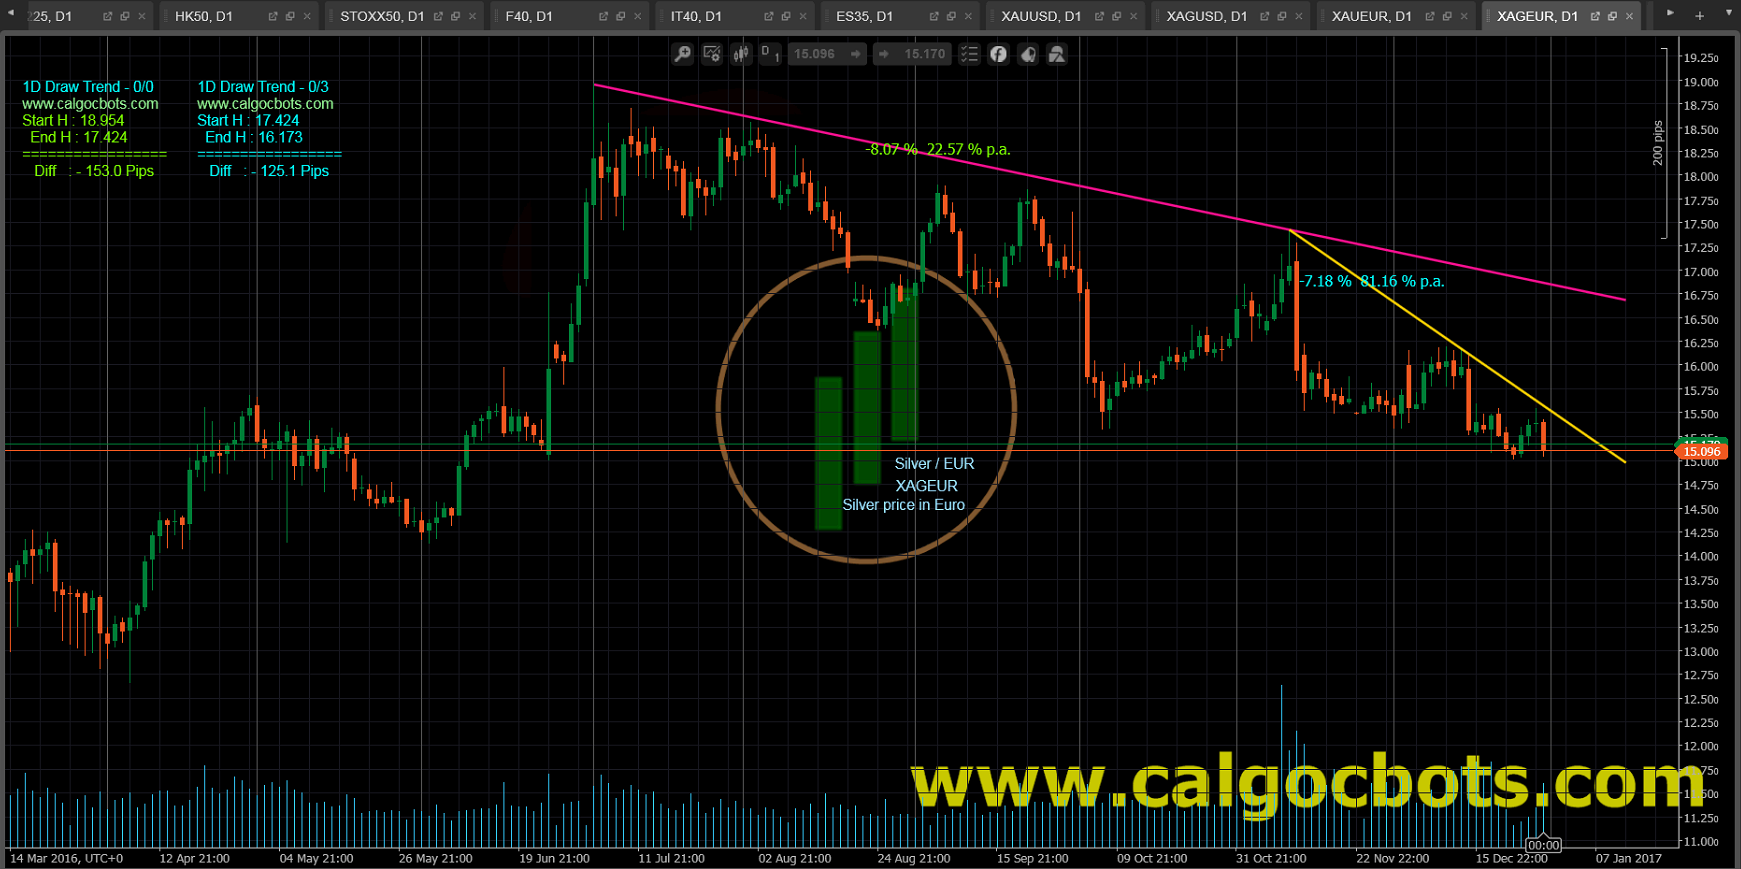 1D Draw Trend - cAlgo and cTrader Indicator - Silver EUR Spot - XAGEUR Daily Chart - 004